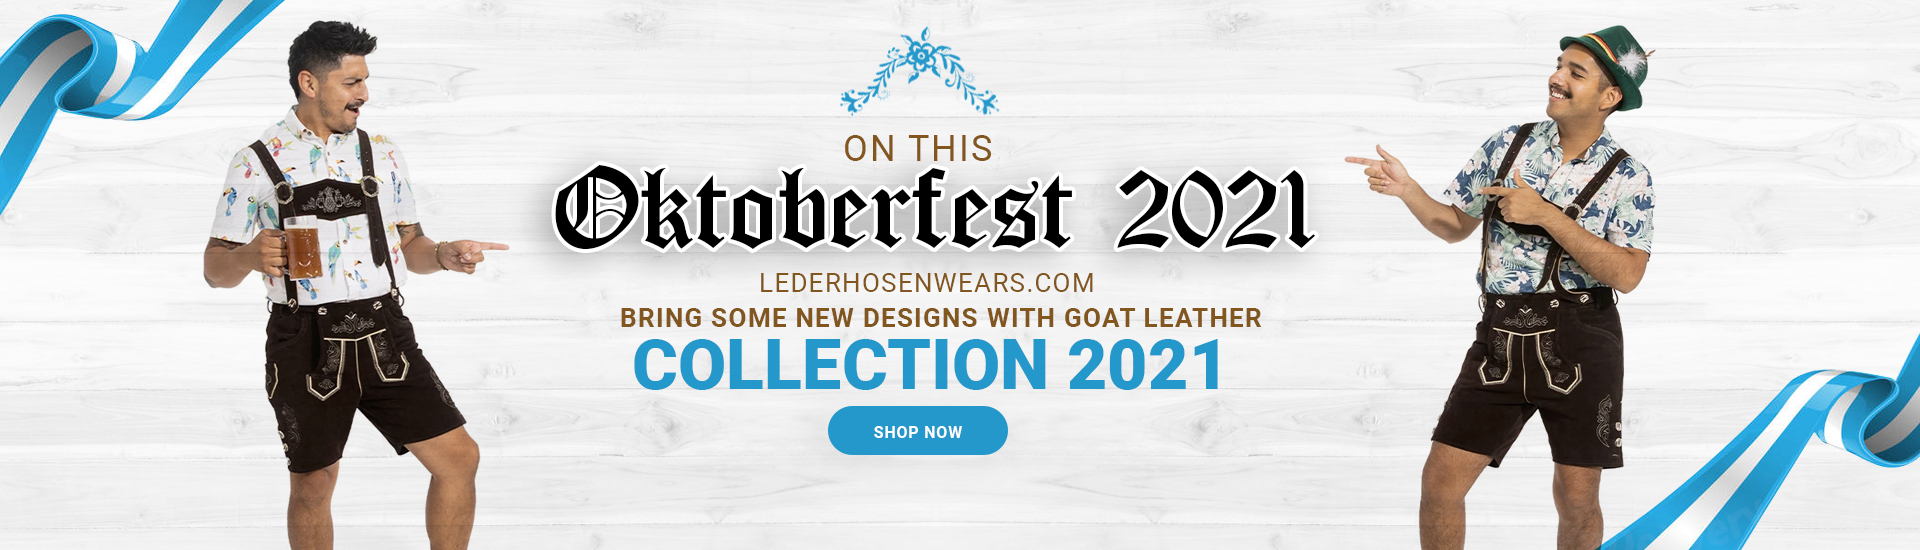 Latest Designs of Oktoberfest 2021